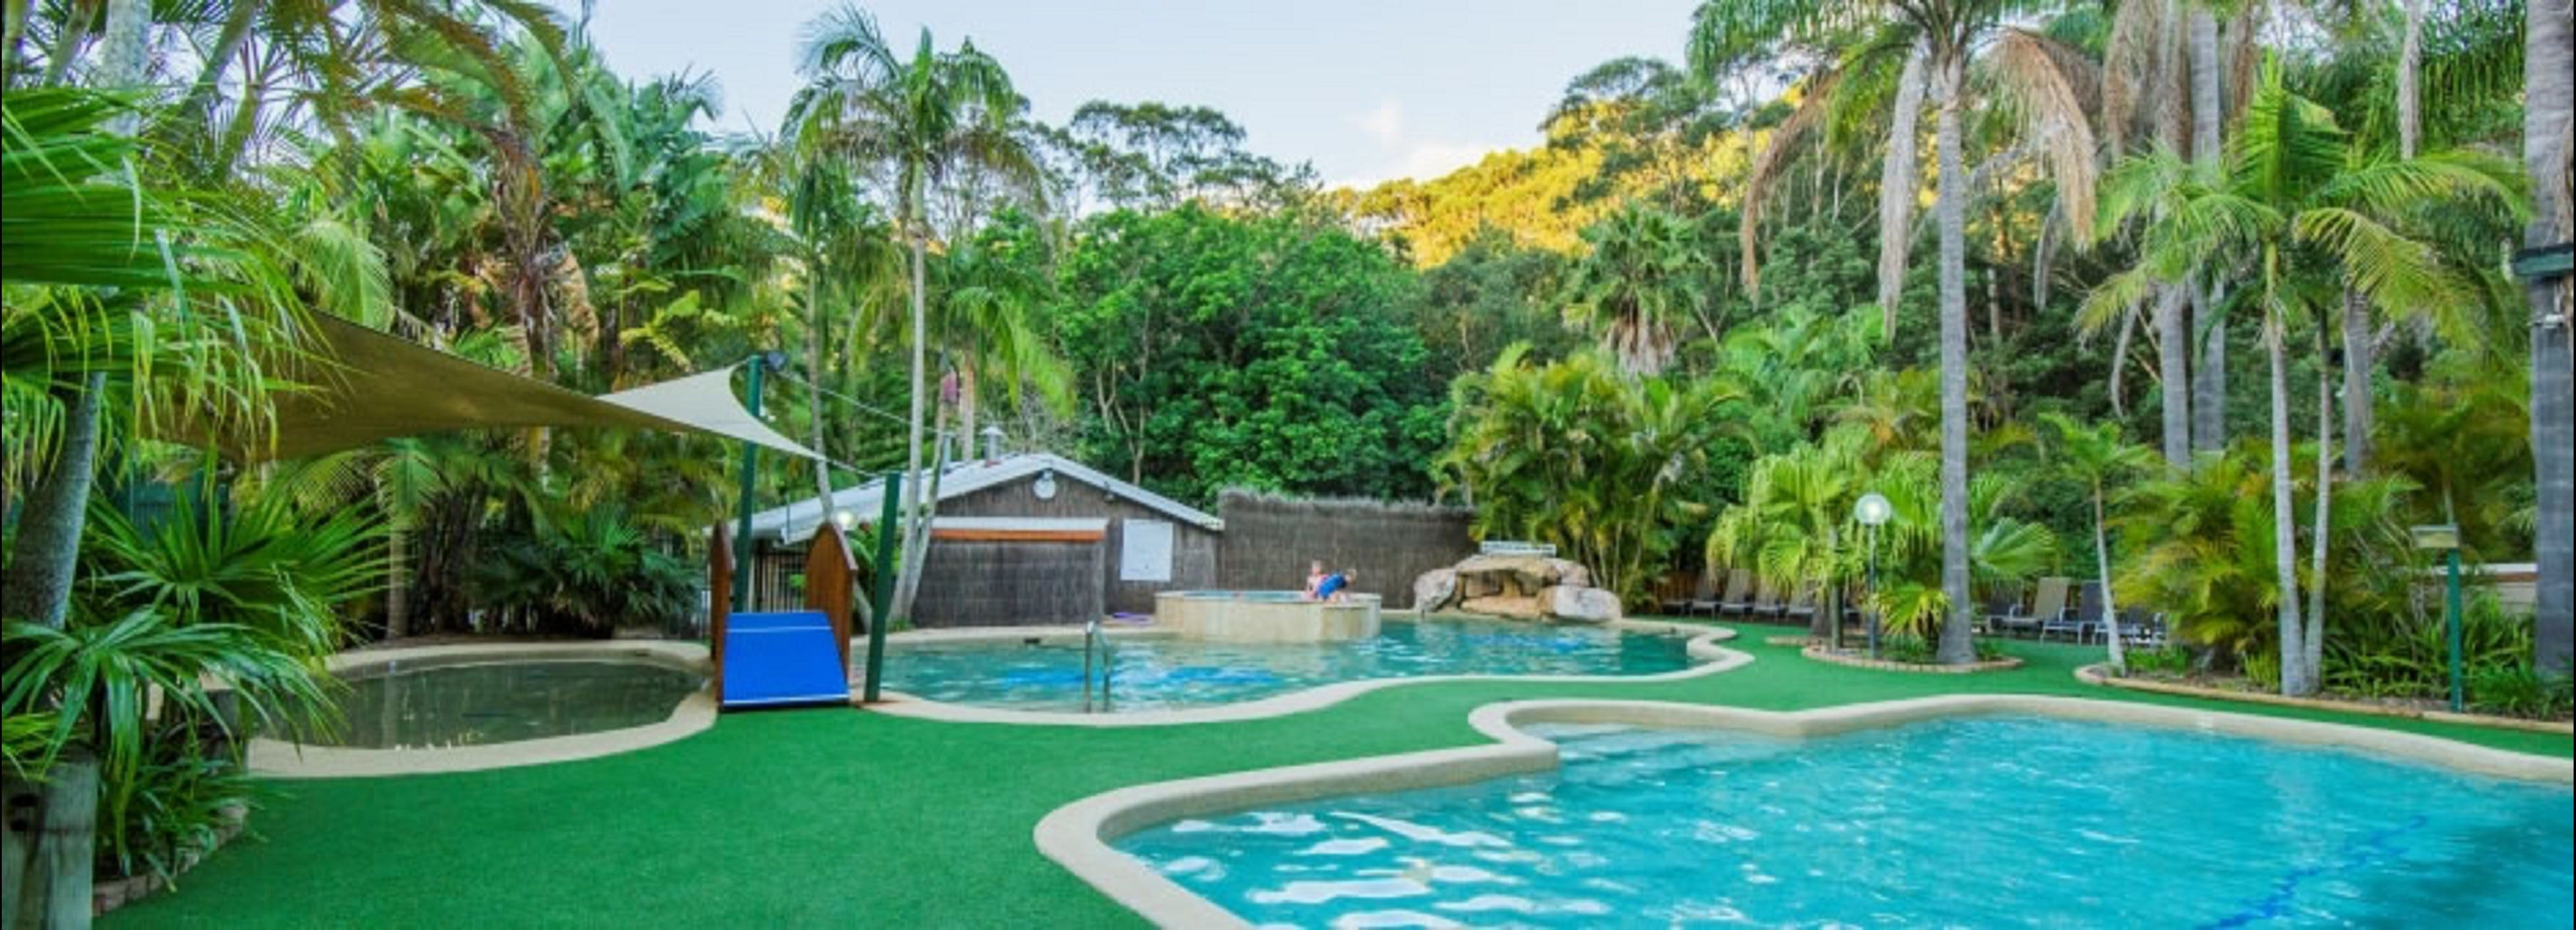 The Palms at Avoca - C Tourism